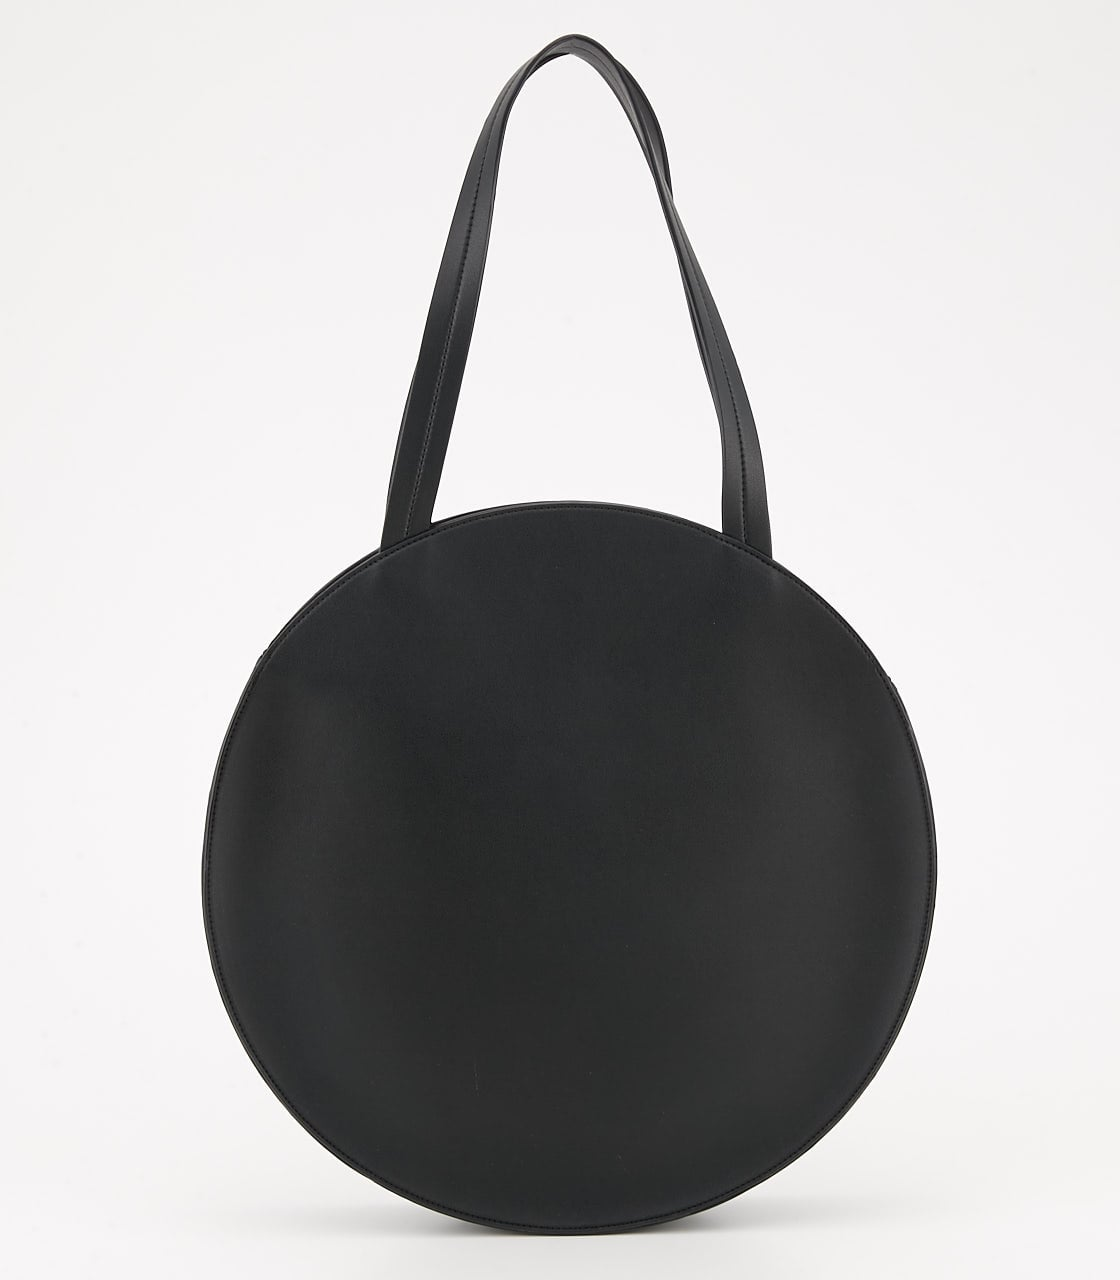 CIRCLE SHOULDER BAG M 詳細画像 BLK 1